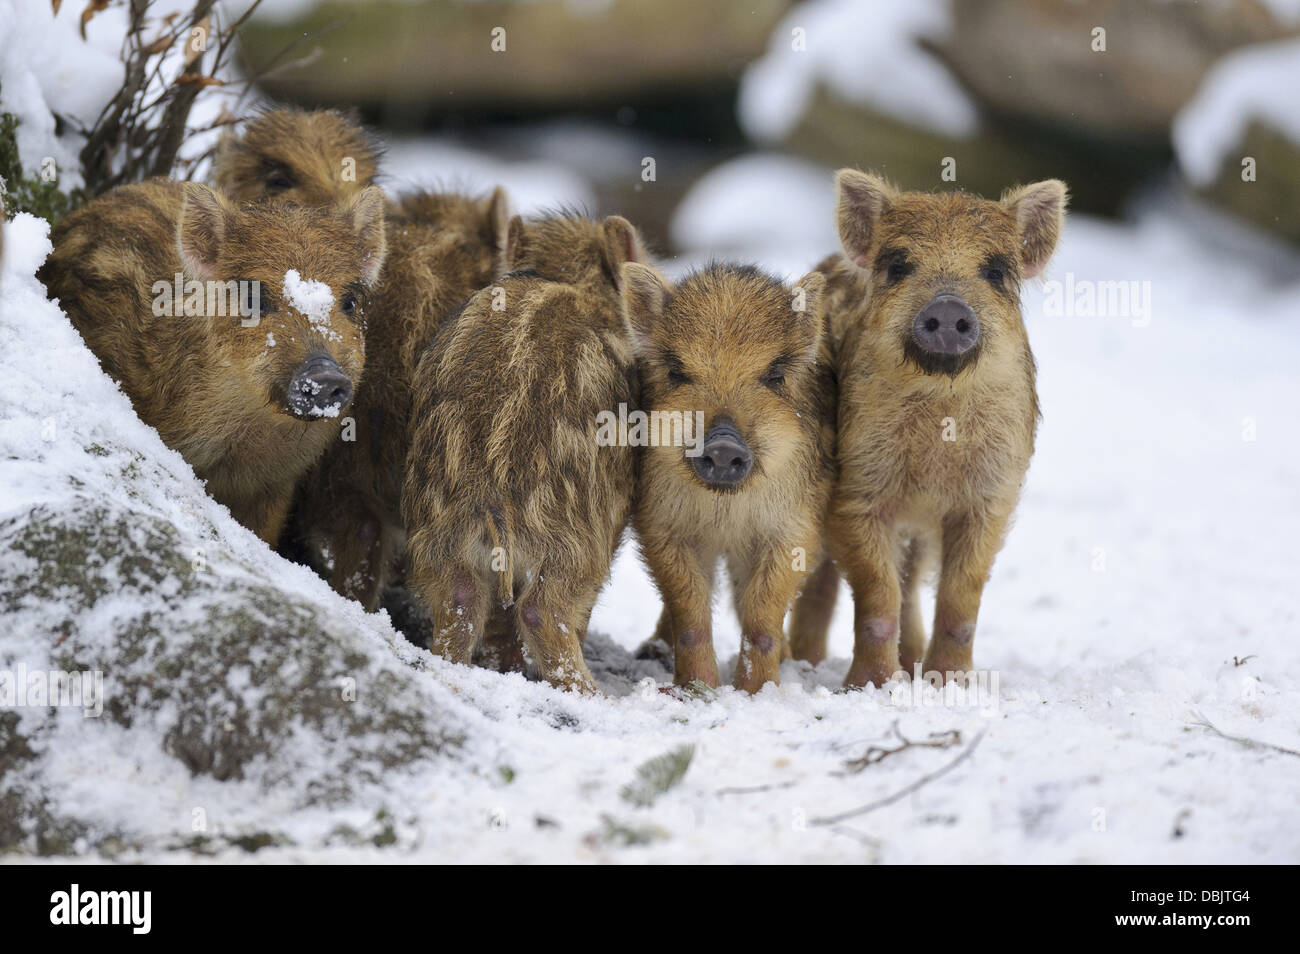 Young Wild boars in snow, Sus scrofa, Lower Saxony, Germany, Europe - Stock Image